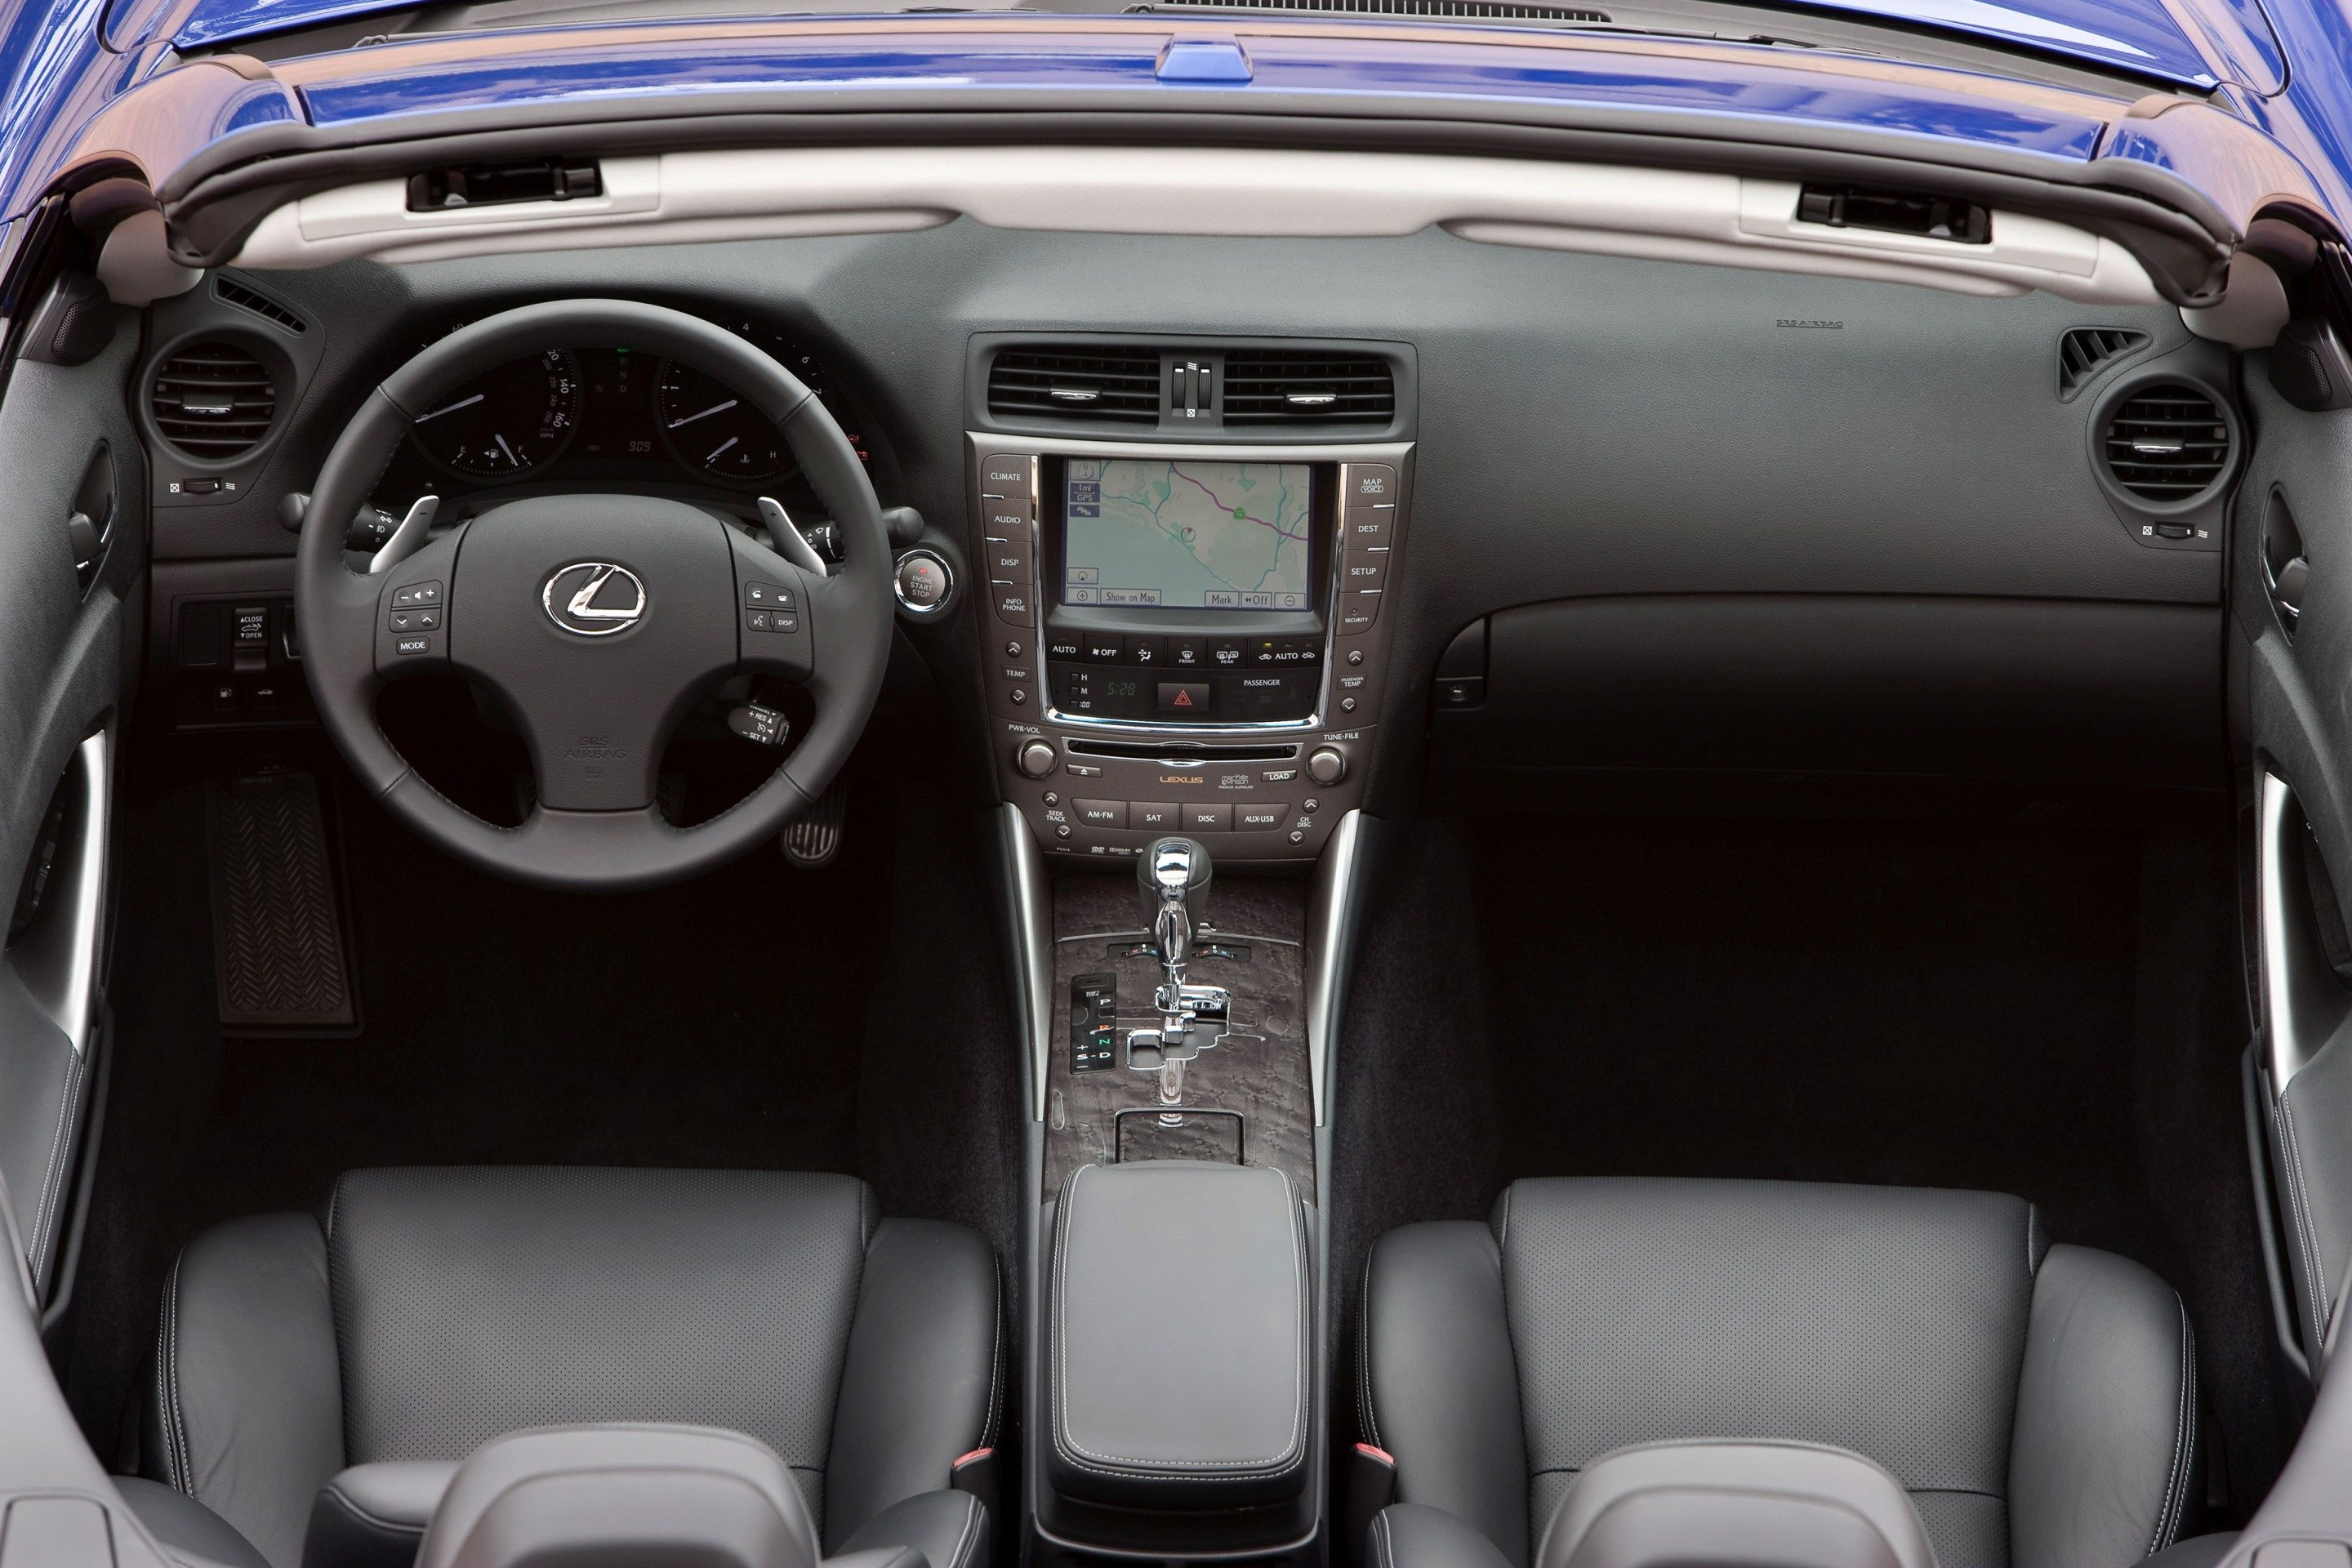 Previous Image. Road Test Review   2014 Lexus IS250 F Sport ...